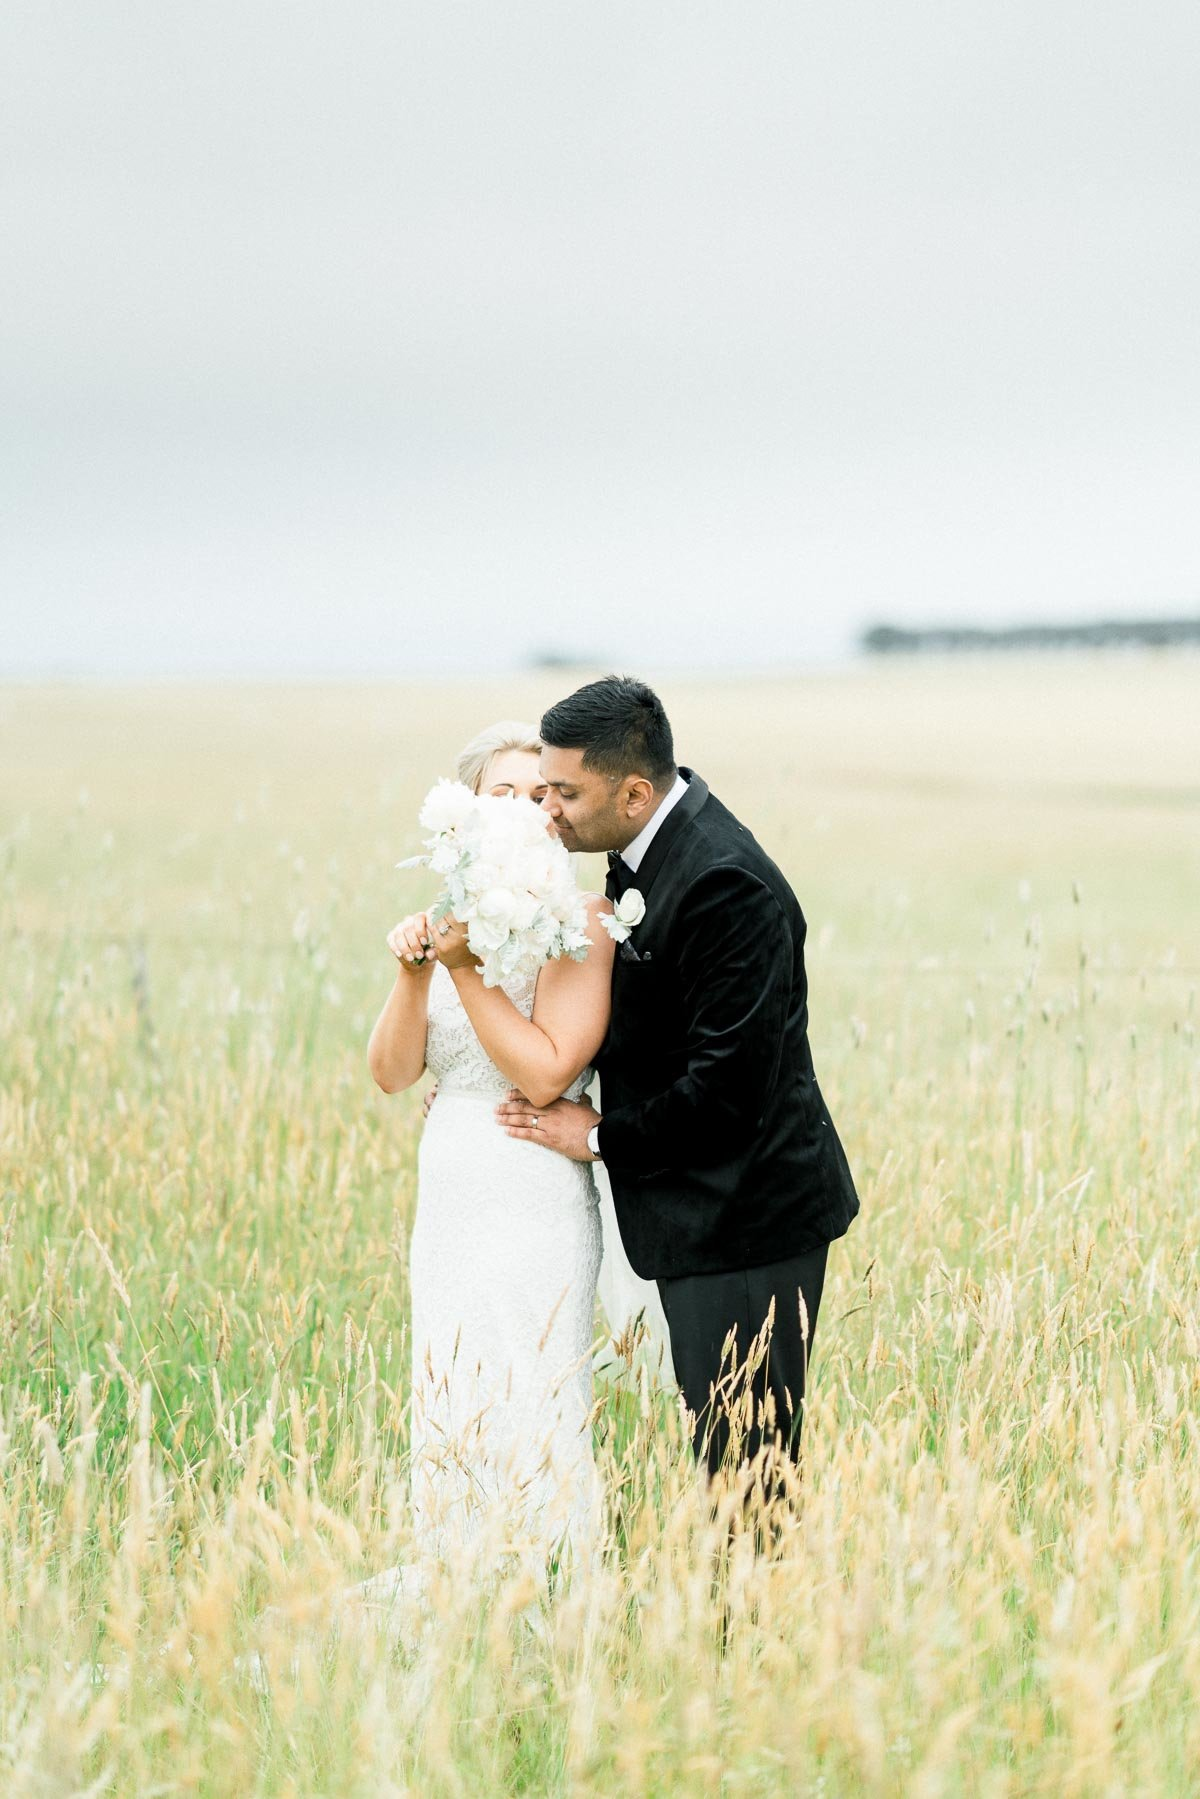 trenavin-chapel-phillip-island-wedding-heart+soul-weddings-sally-sean-01642